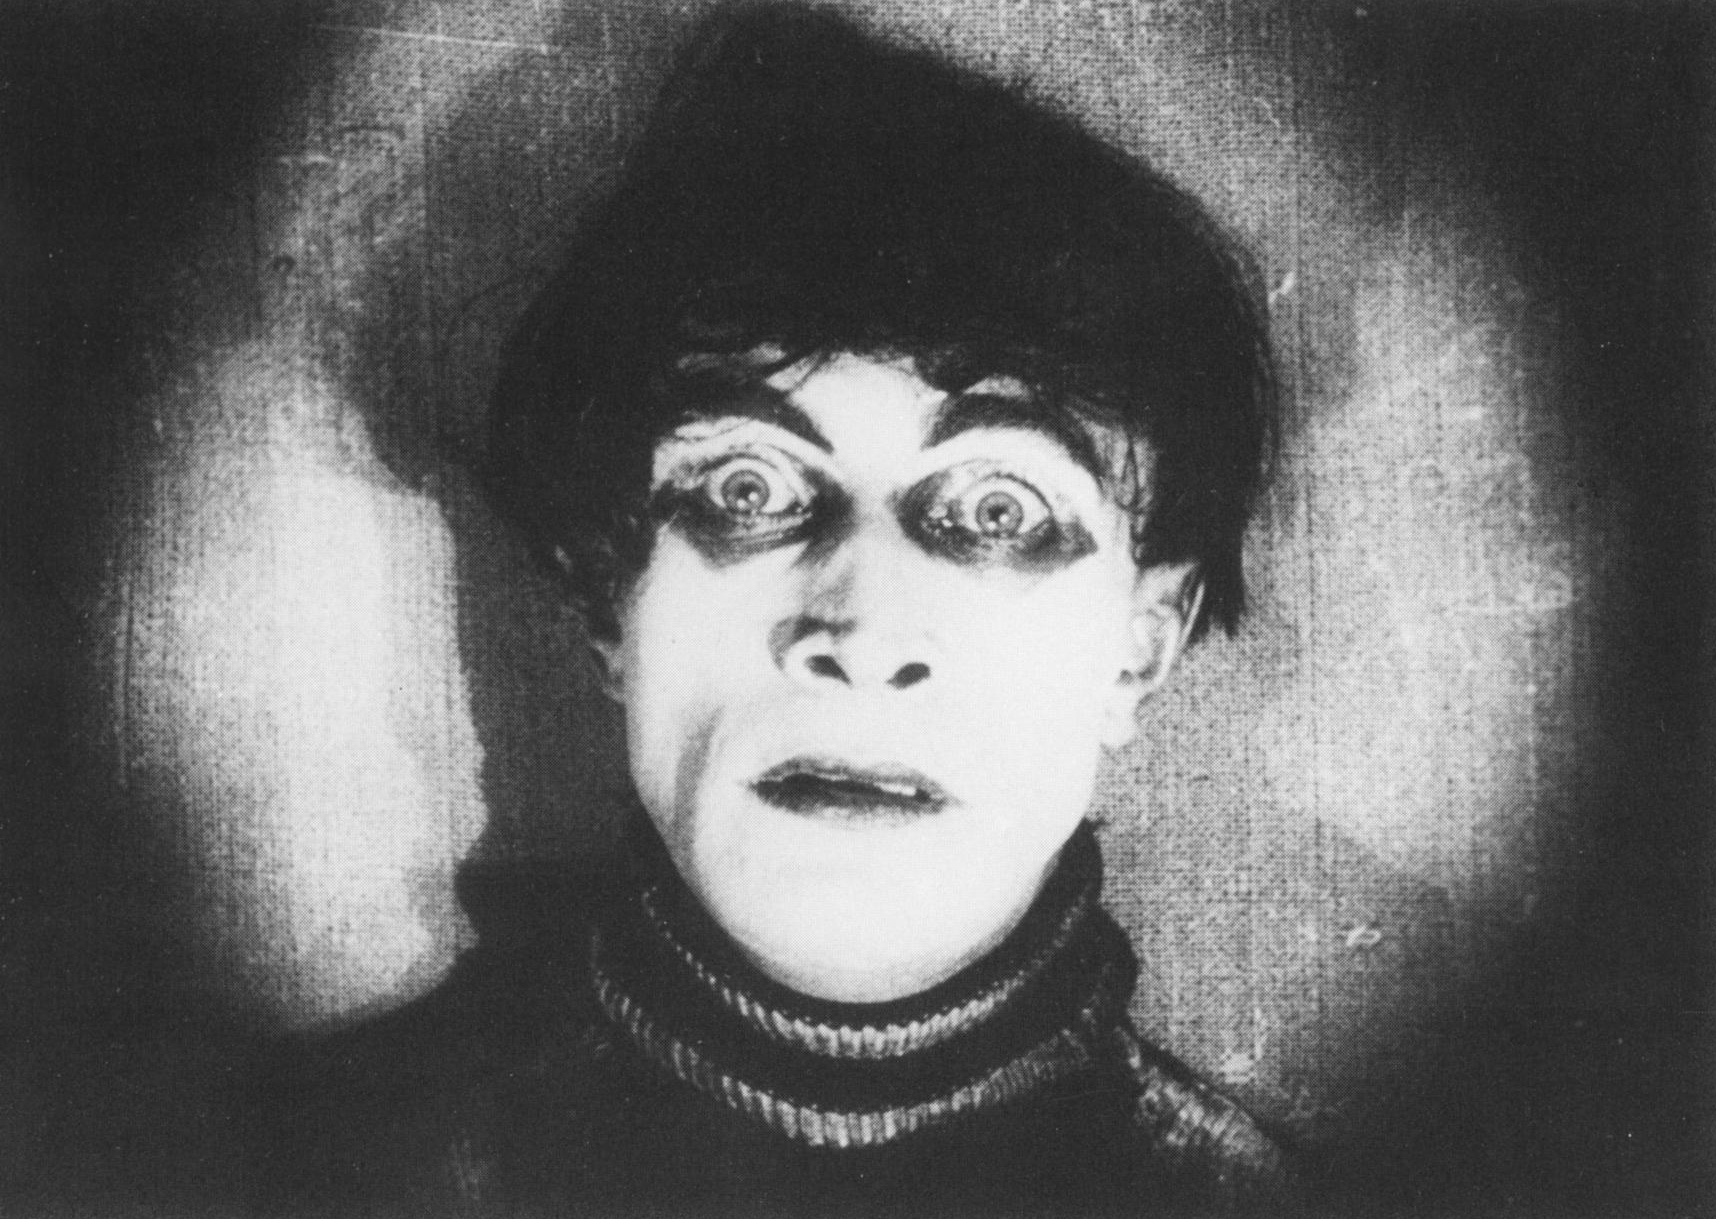 The_Cabinet_of_Dr_Caligari_Conrad_Veidt_Wikipedia